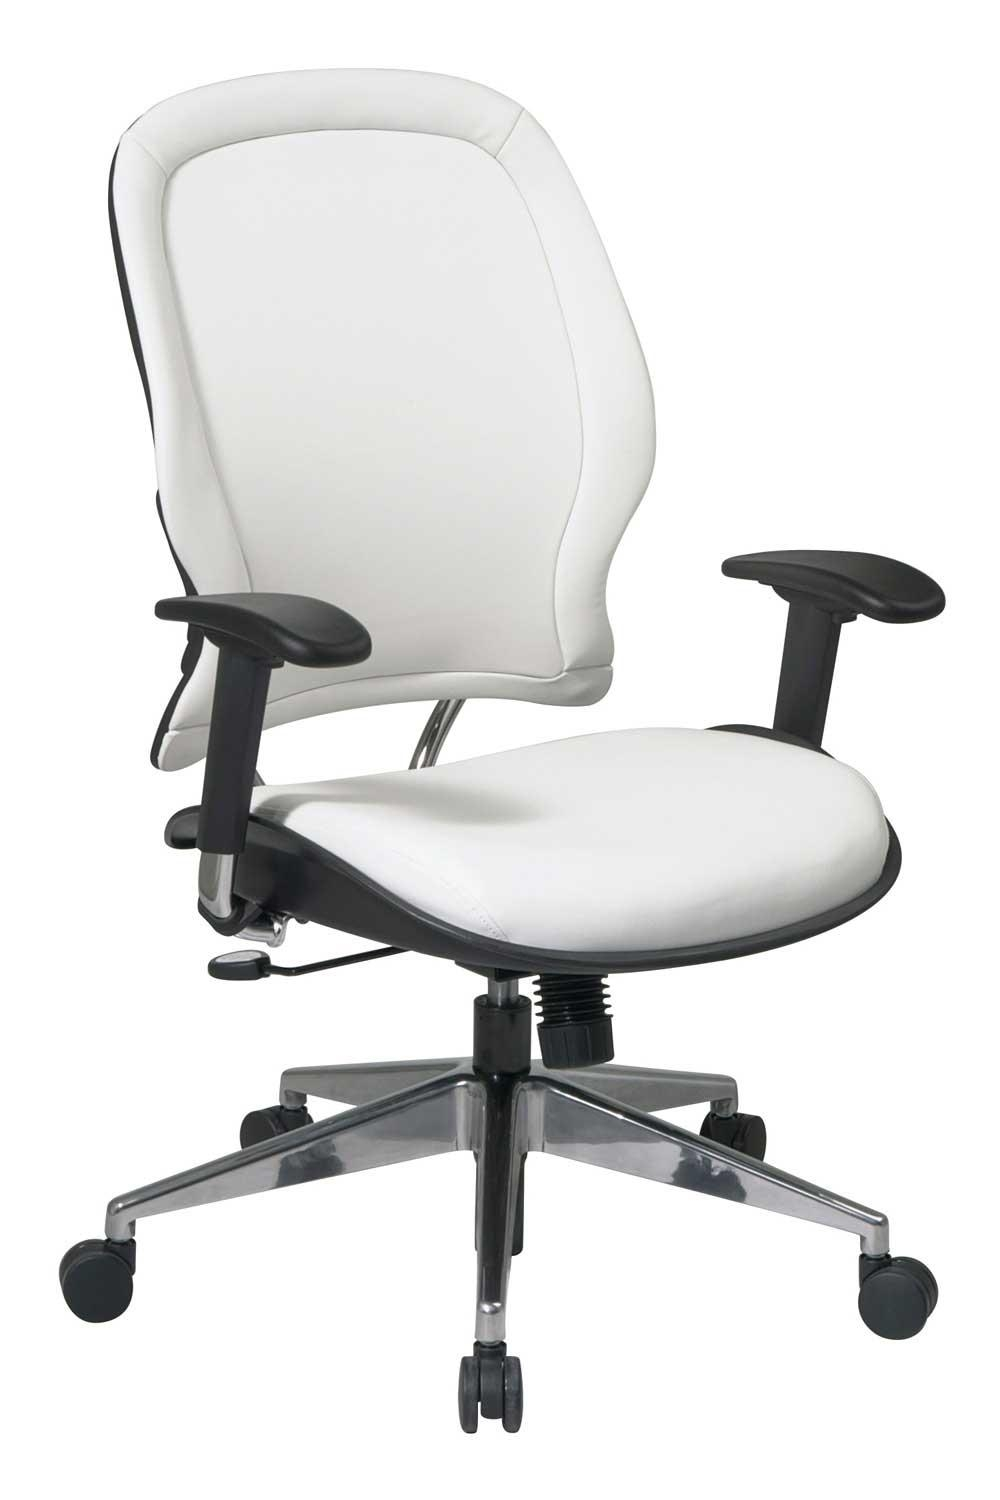 Sofa White Ergonomic Office Chairs | Winafrica Within Sofa Desk Chairs (Image 18 of 20)